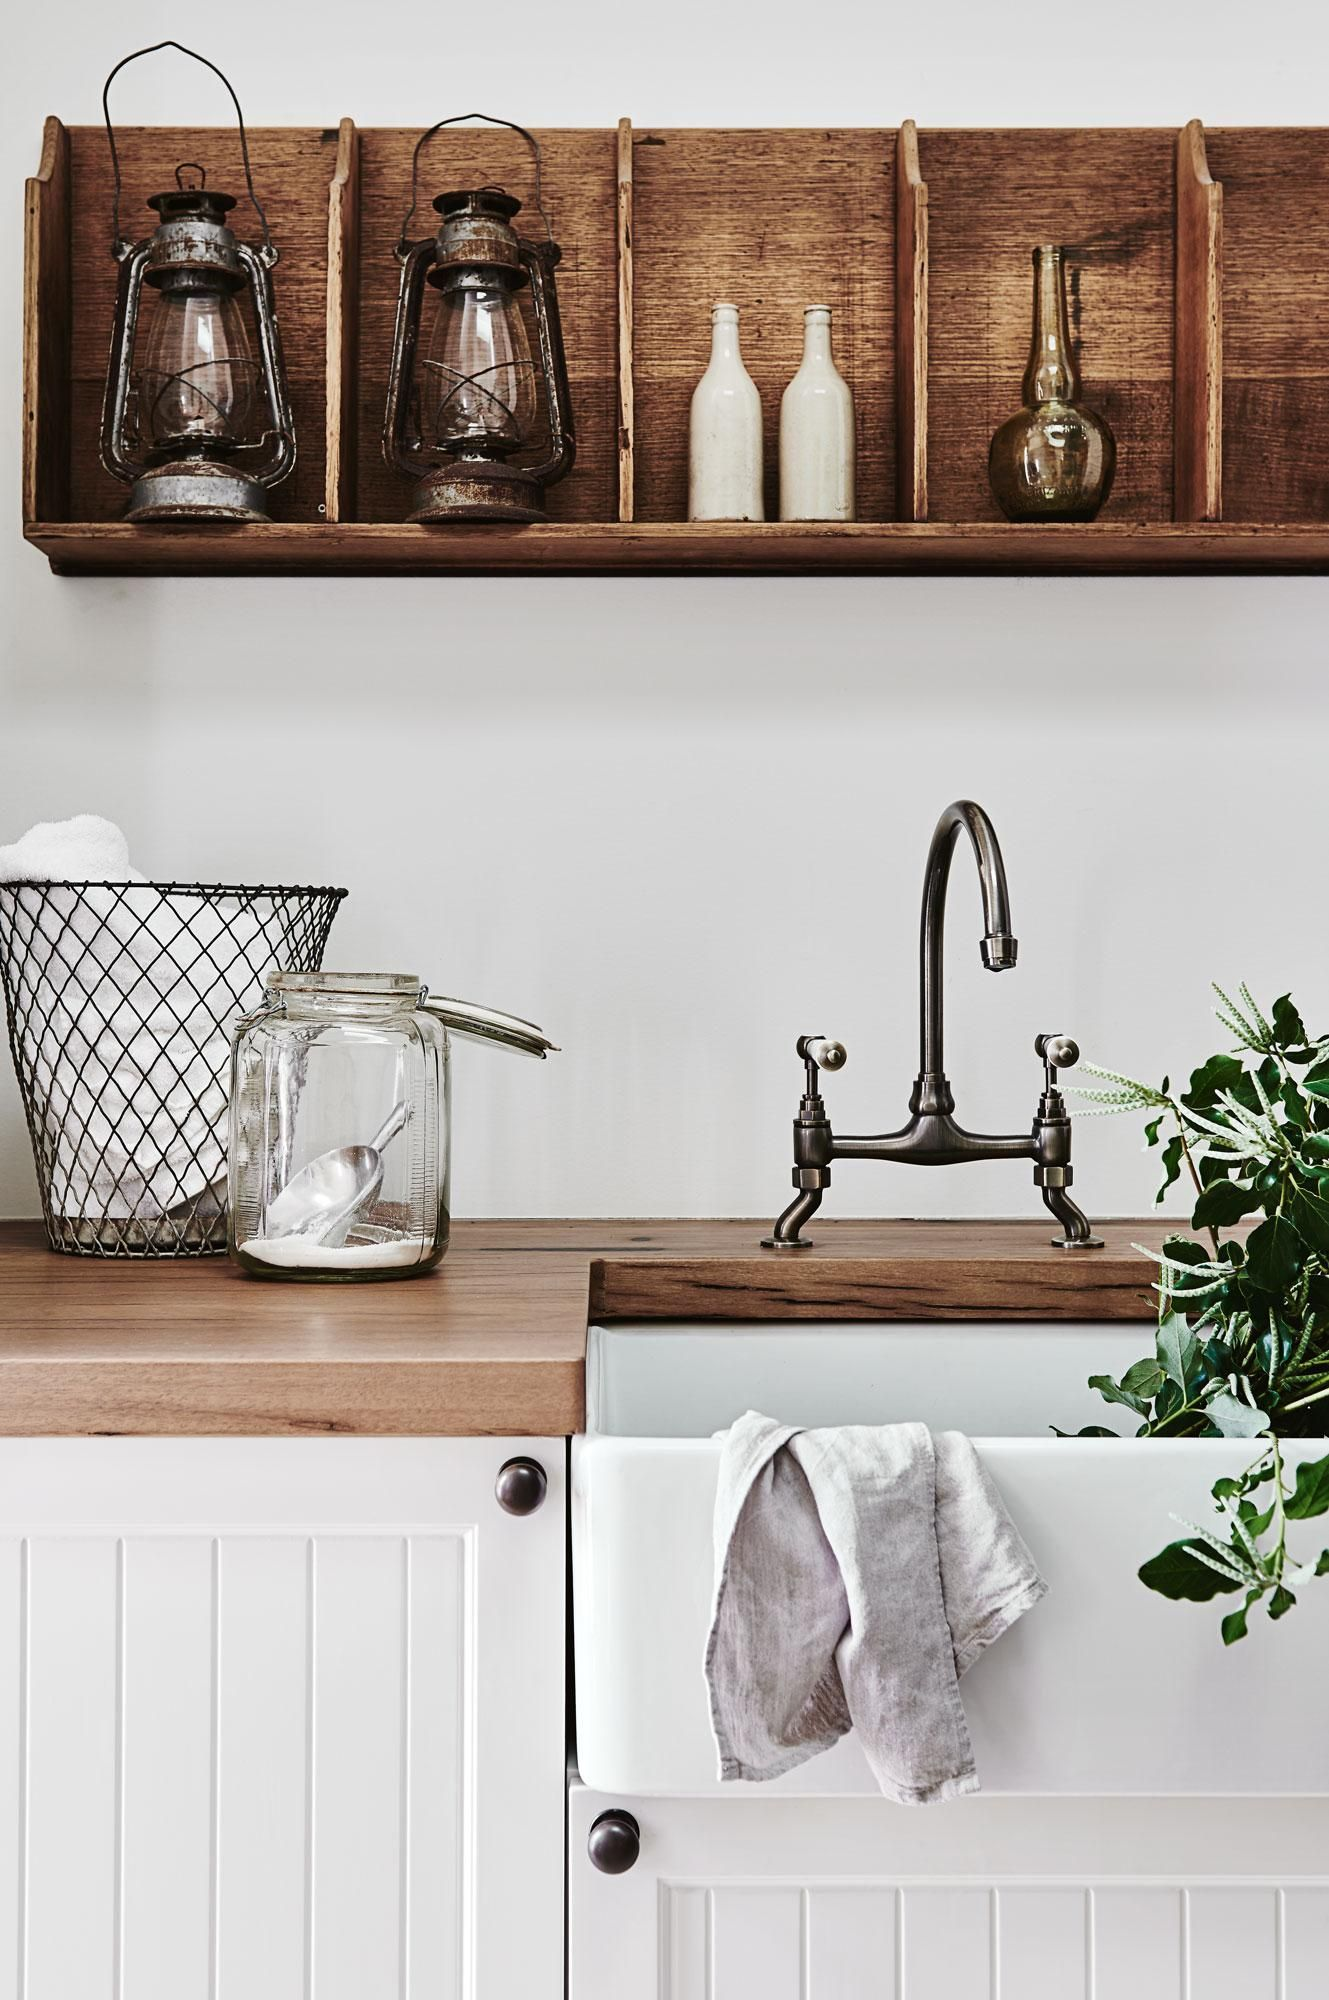 Laundry sink bench cupboard do it yourself home decor projects laundry sink bench cupboard solutioingenieria Image collections